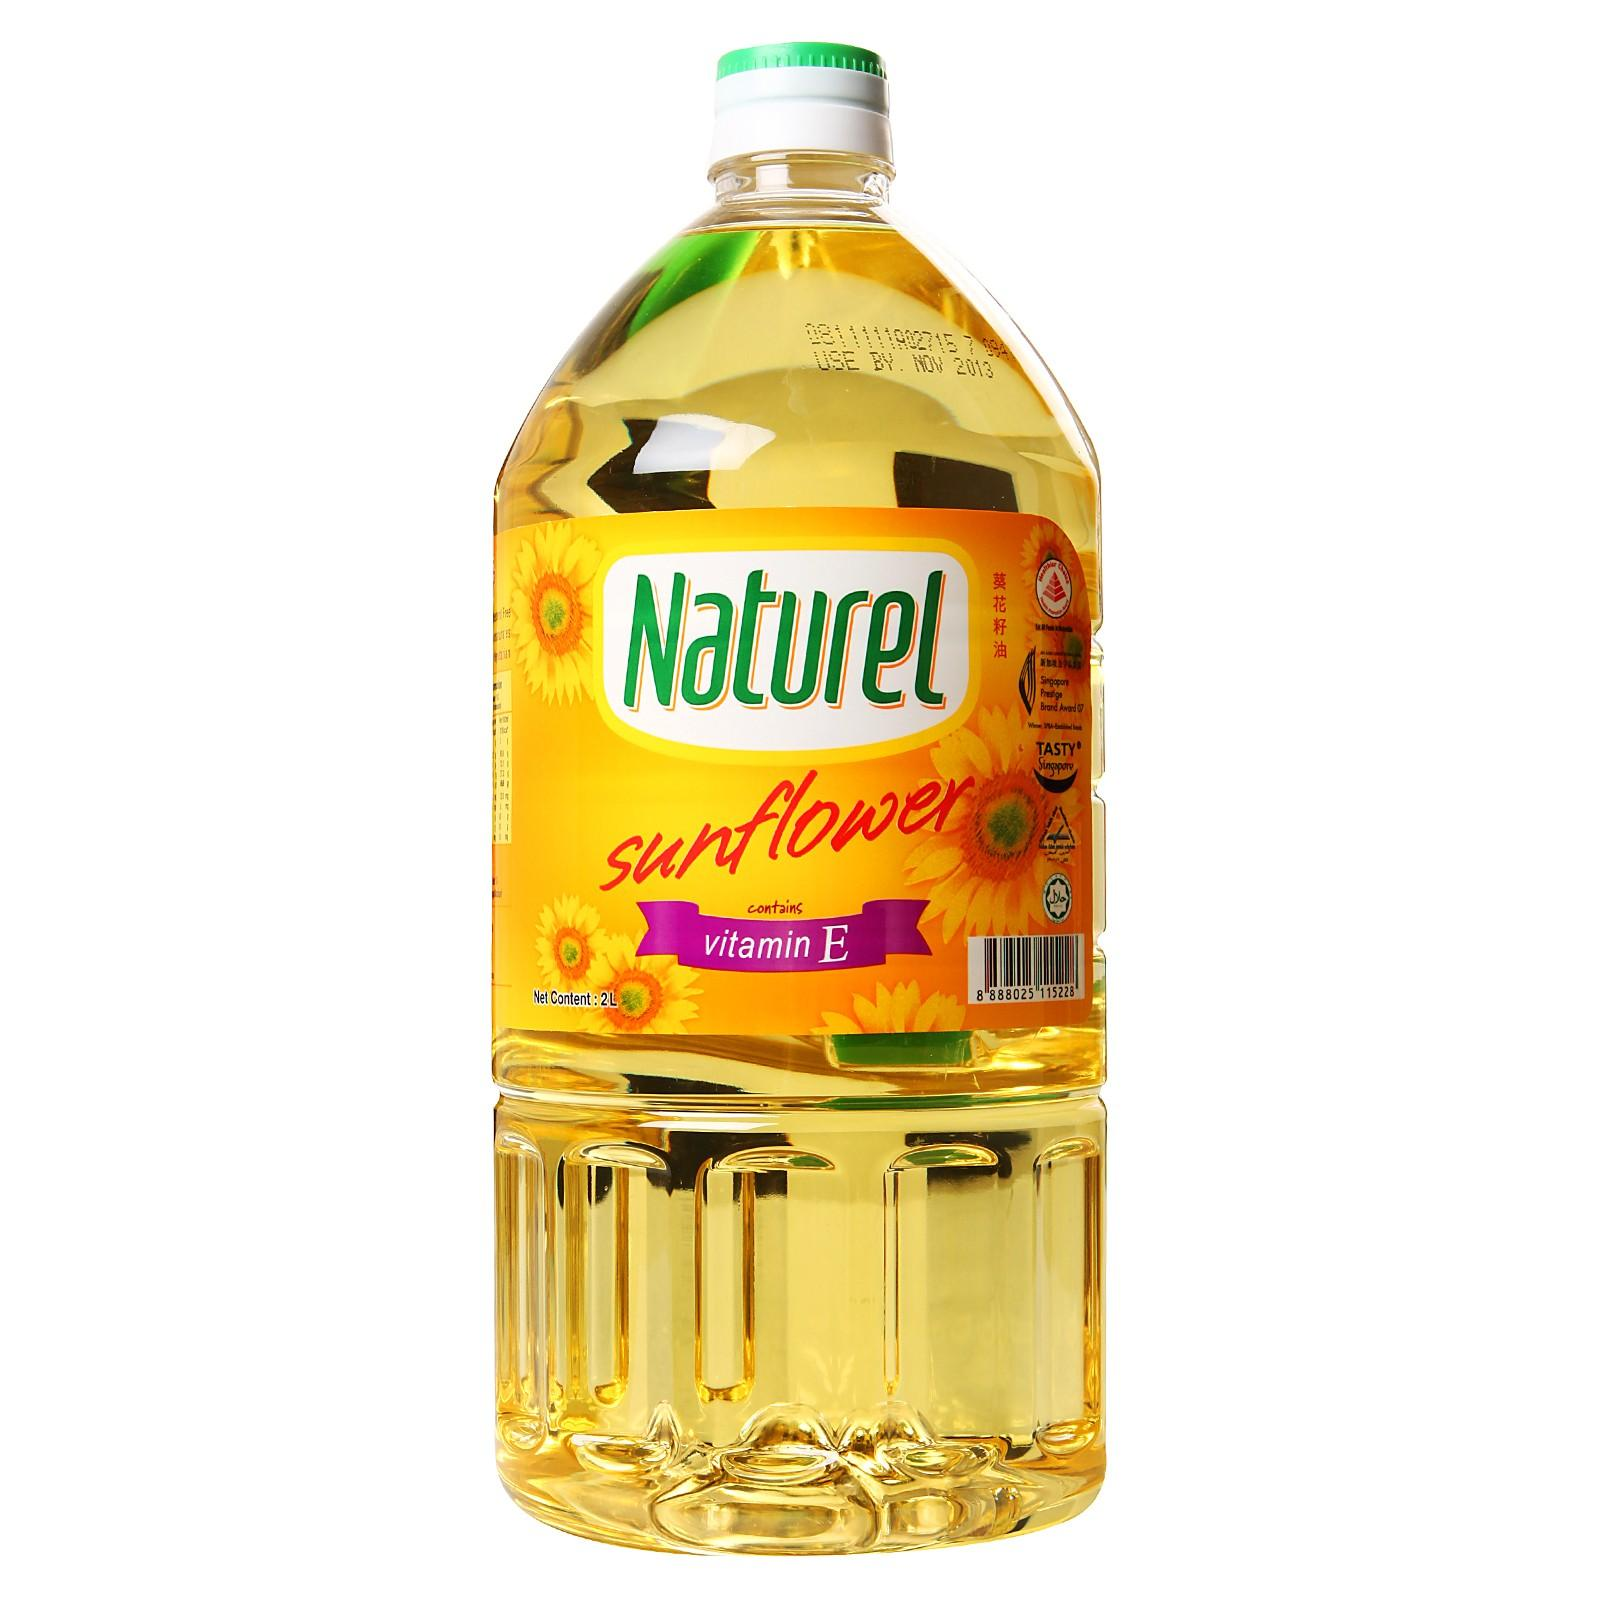 Naturel Cooking Oil - Sunflower